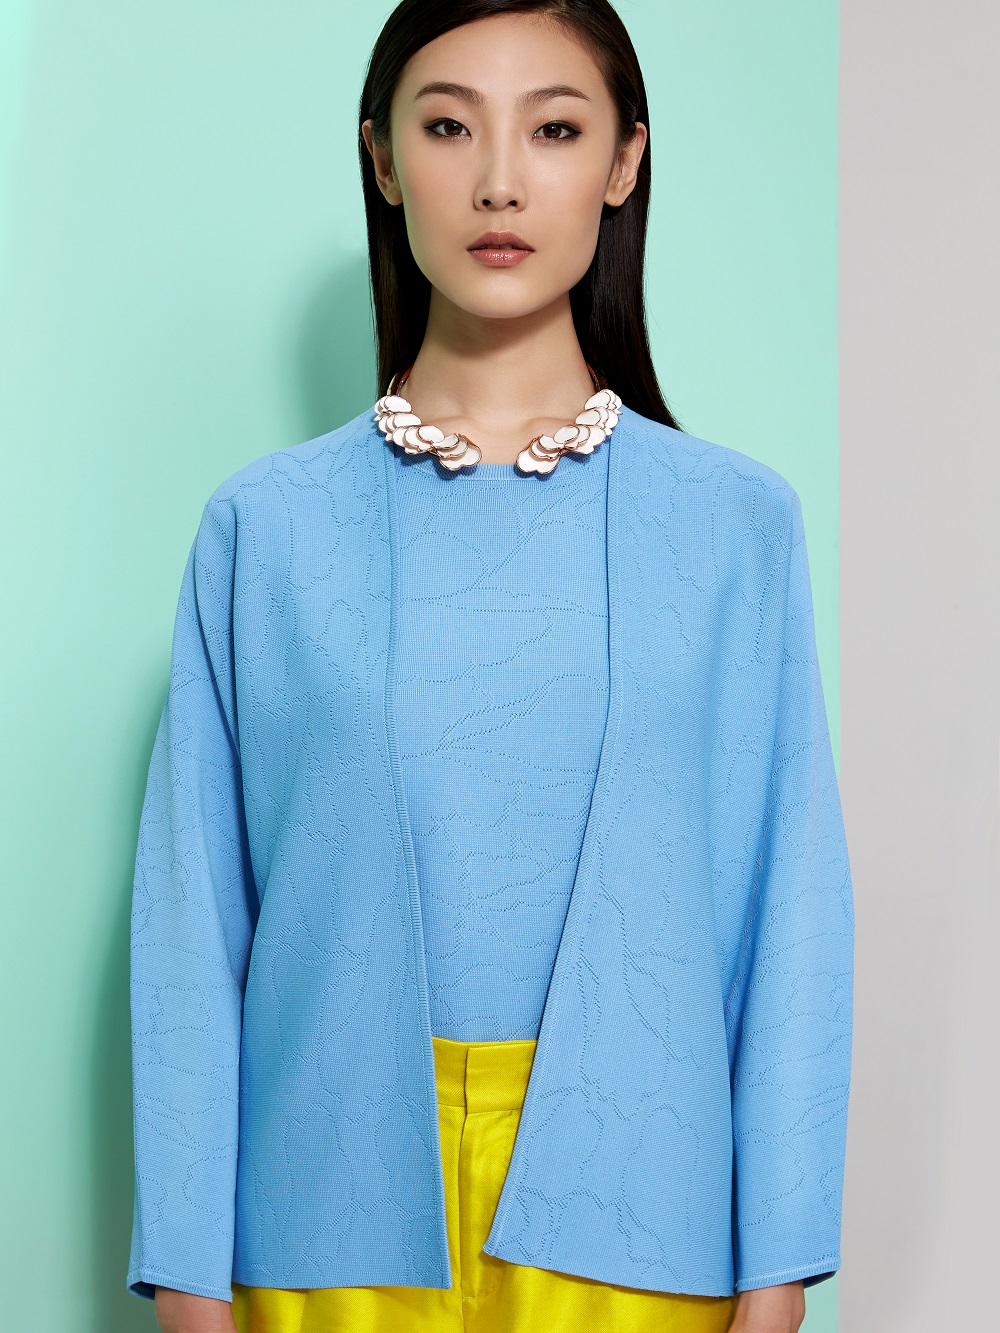 Shanghai Tang Spring Summer 2016 Women's Collection